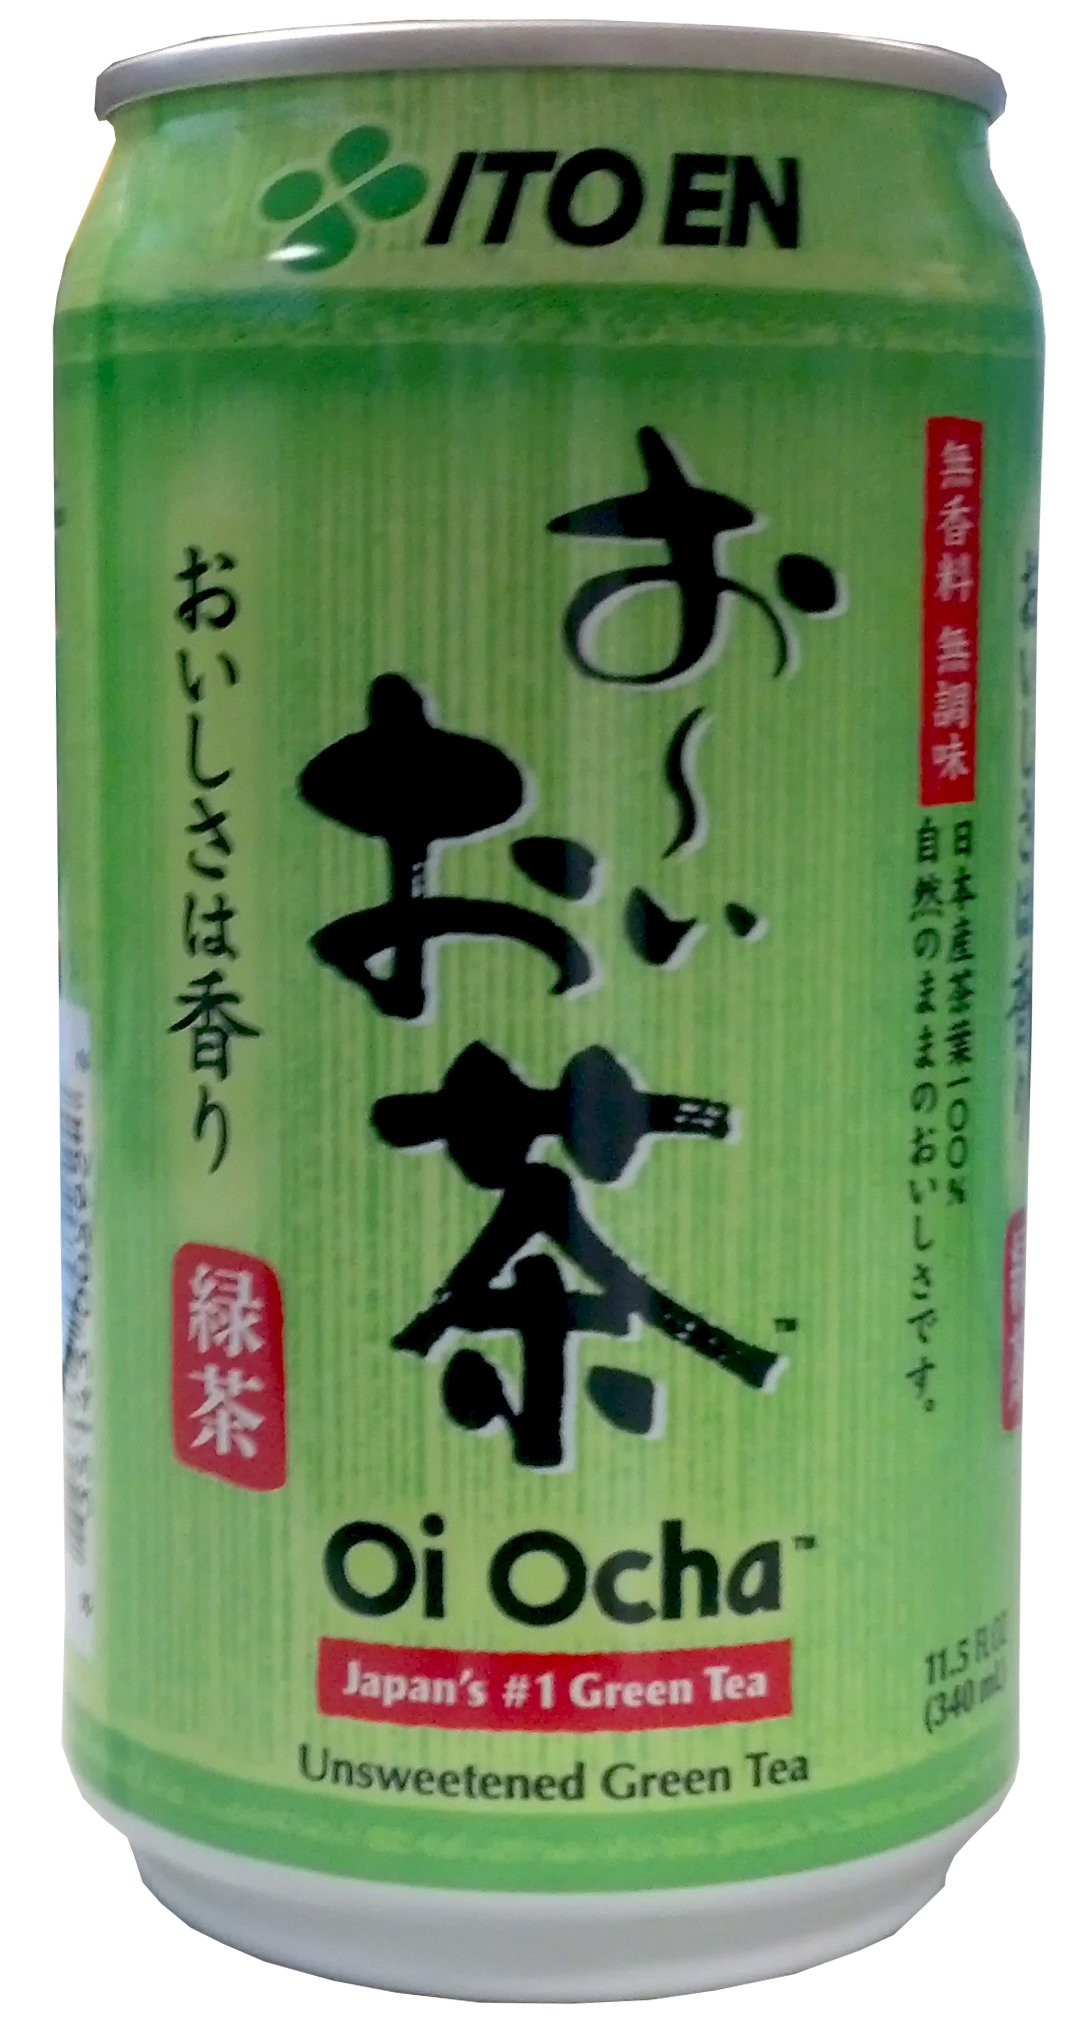 Itoen Green Tea, Unsweetened, 11.5-Ounce (Pack of 24)